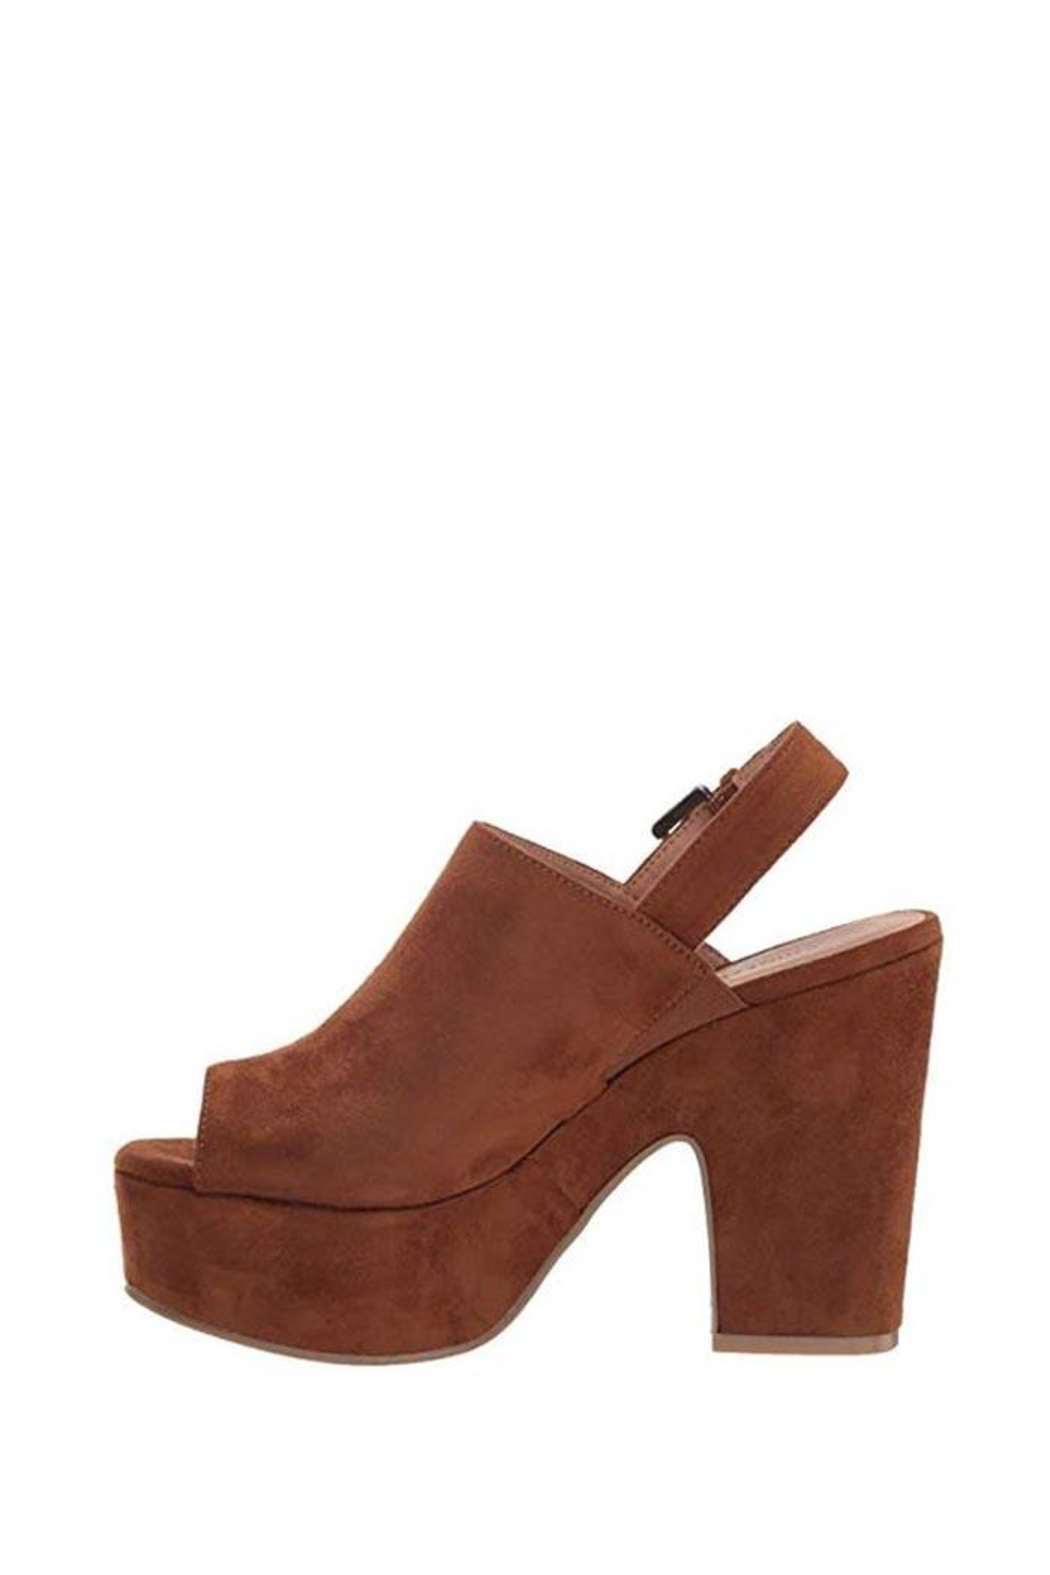 Chinese Laundry Bella Suede Heel - Main Image